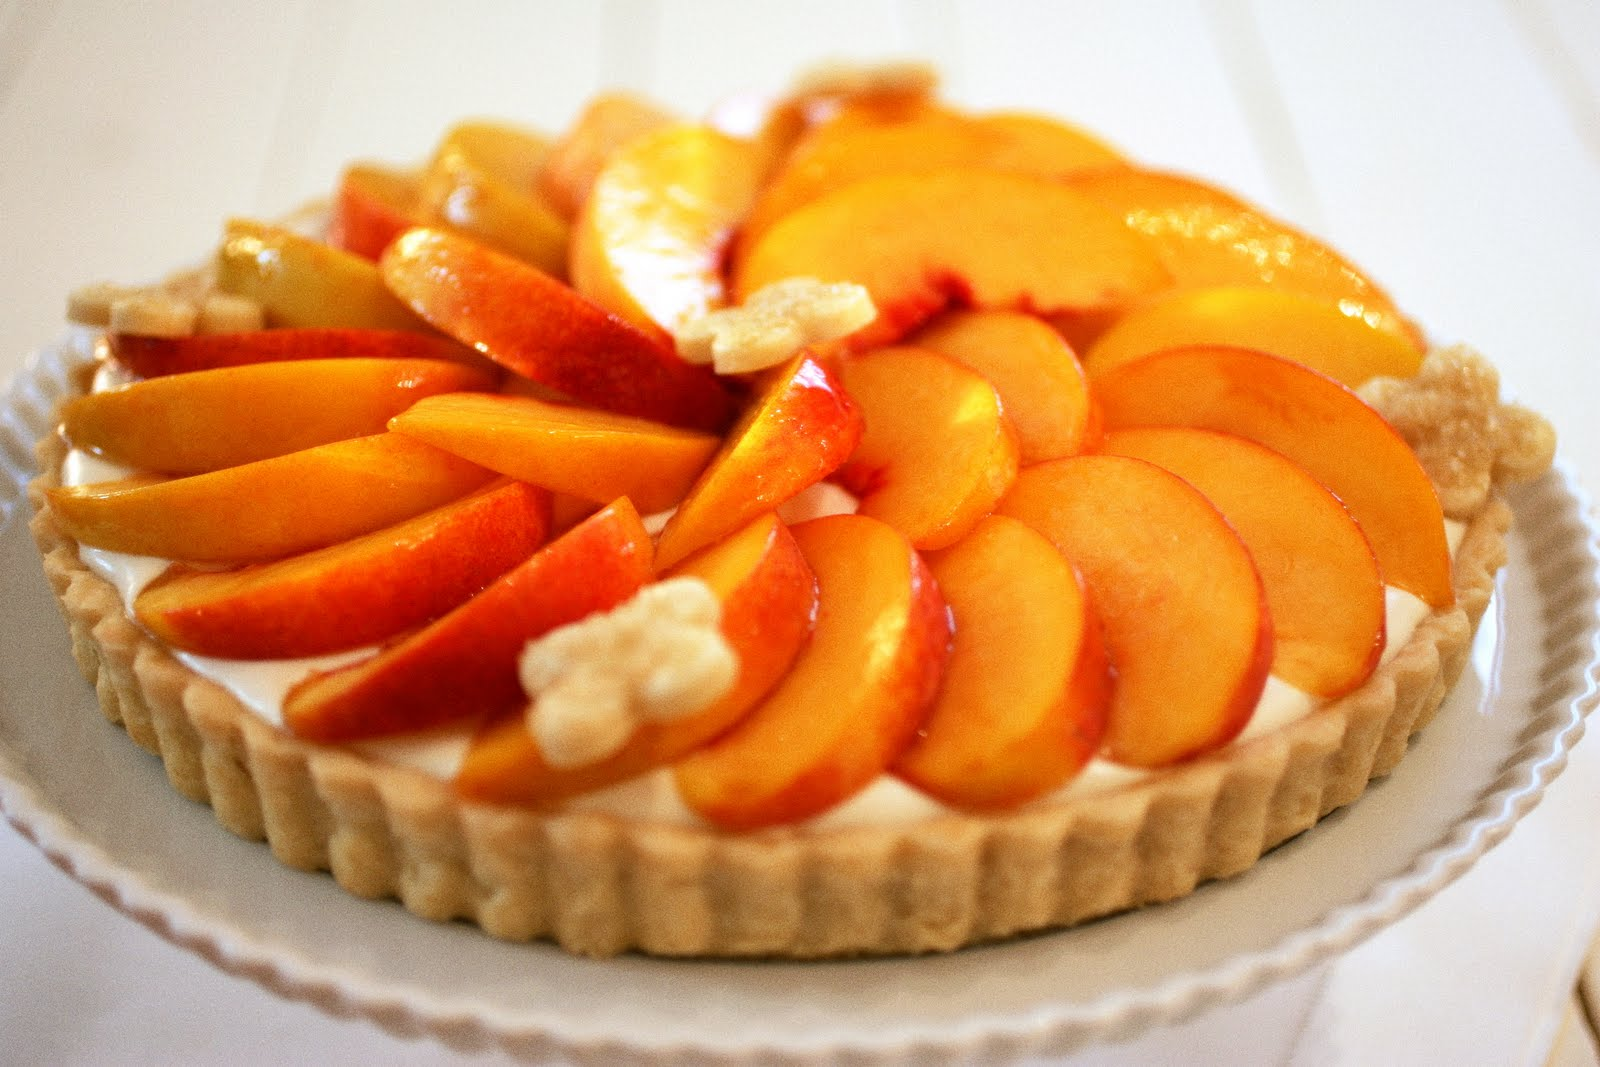 Tish Boyle Sweet Dreams: Just Peachy: Fresh Peach Cheesecake Tart